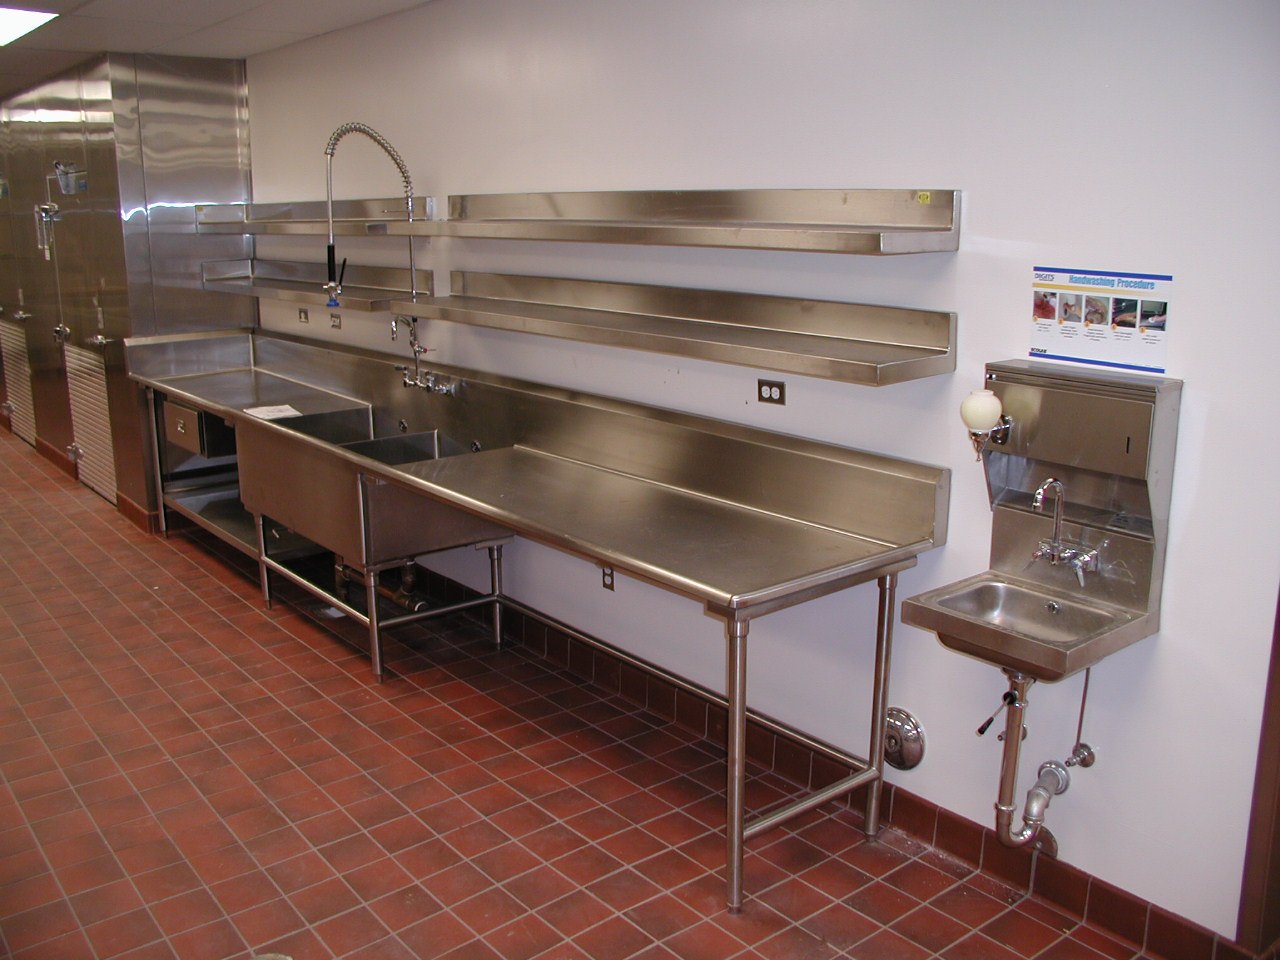 Shelves and Countertop with double sink